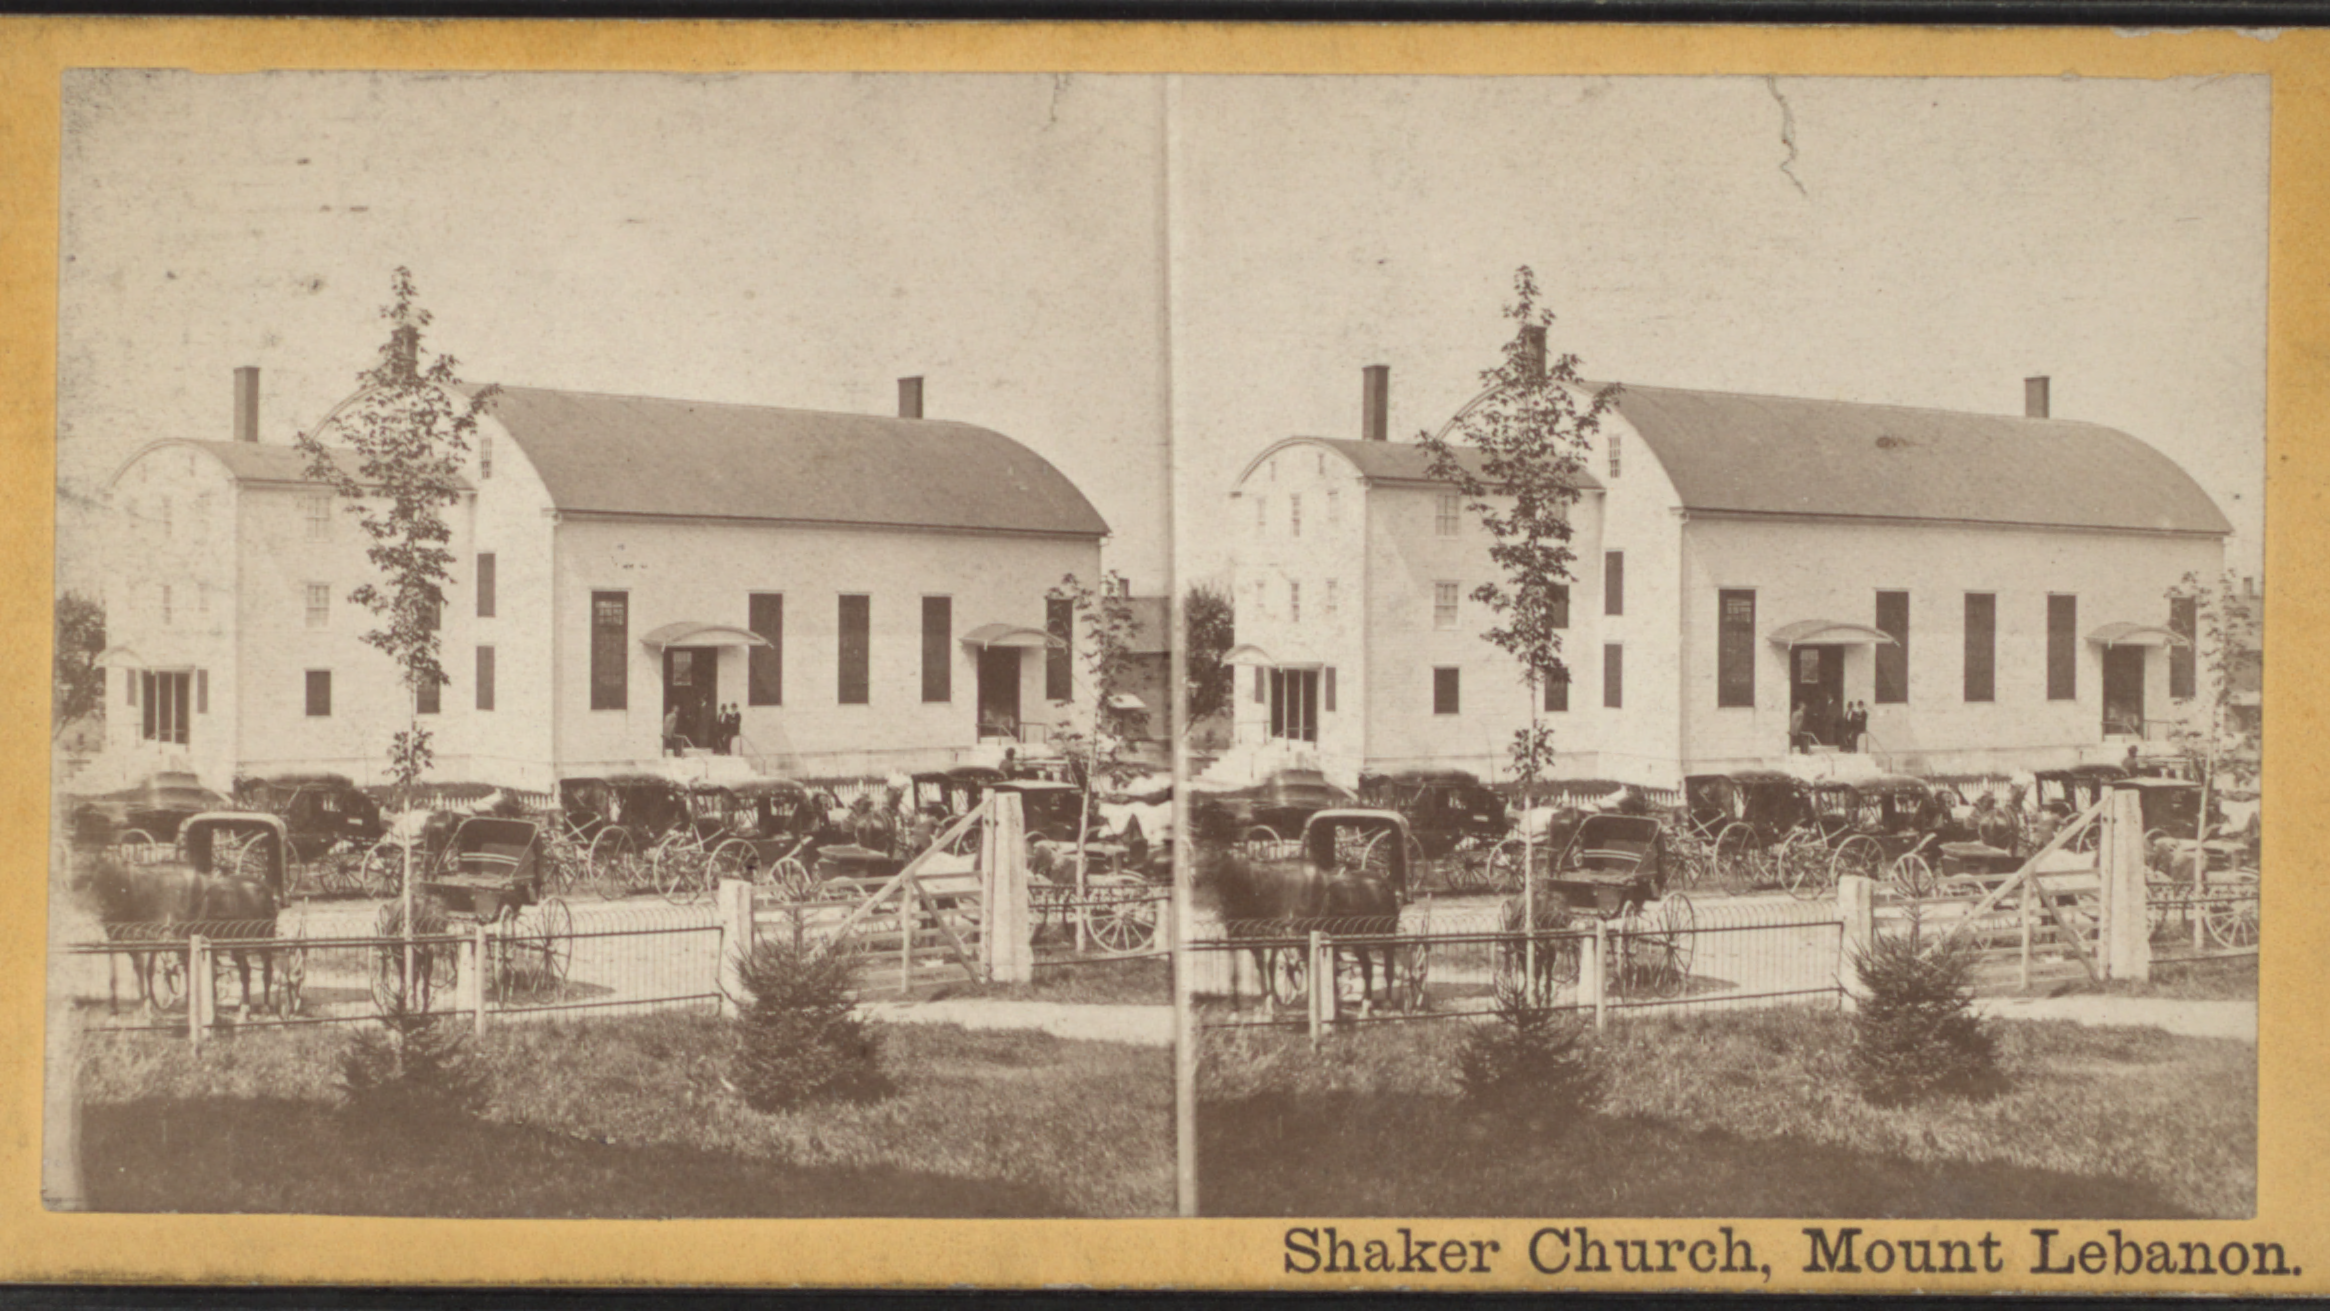 historic photo of a white church with a rounded roof